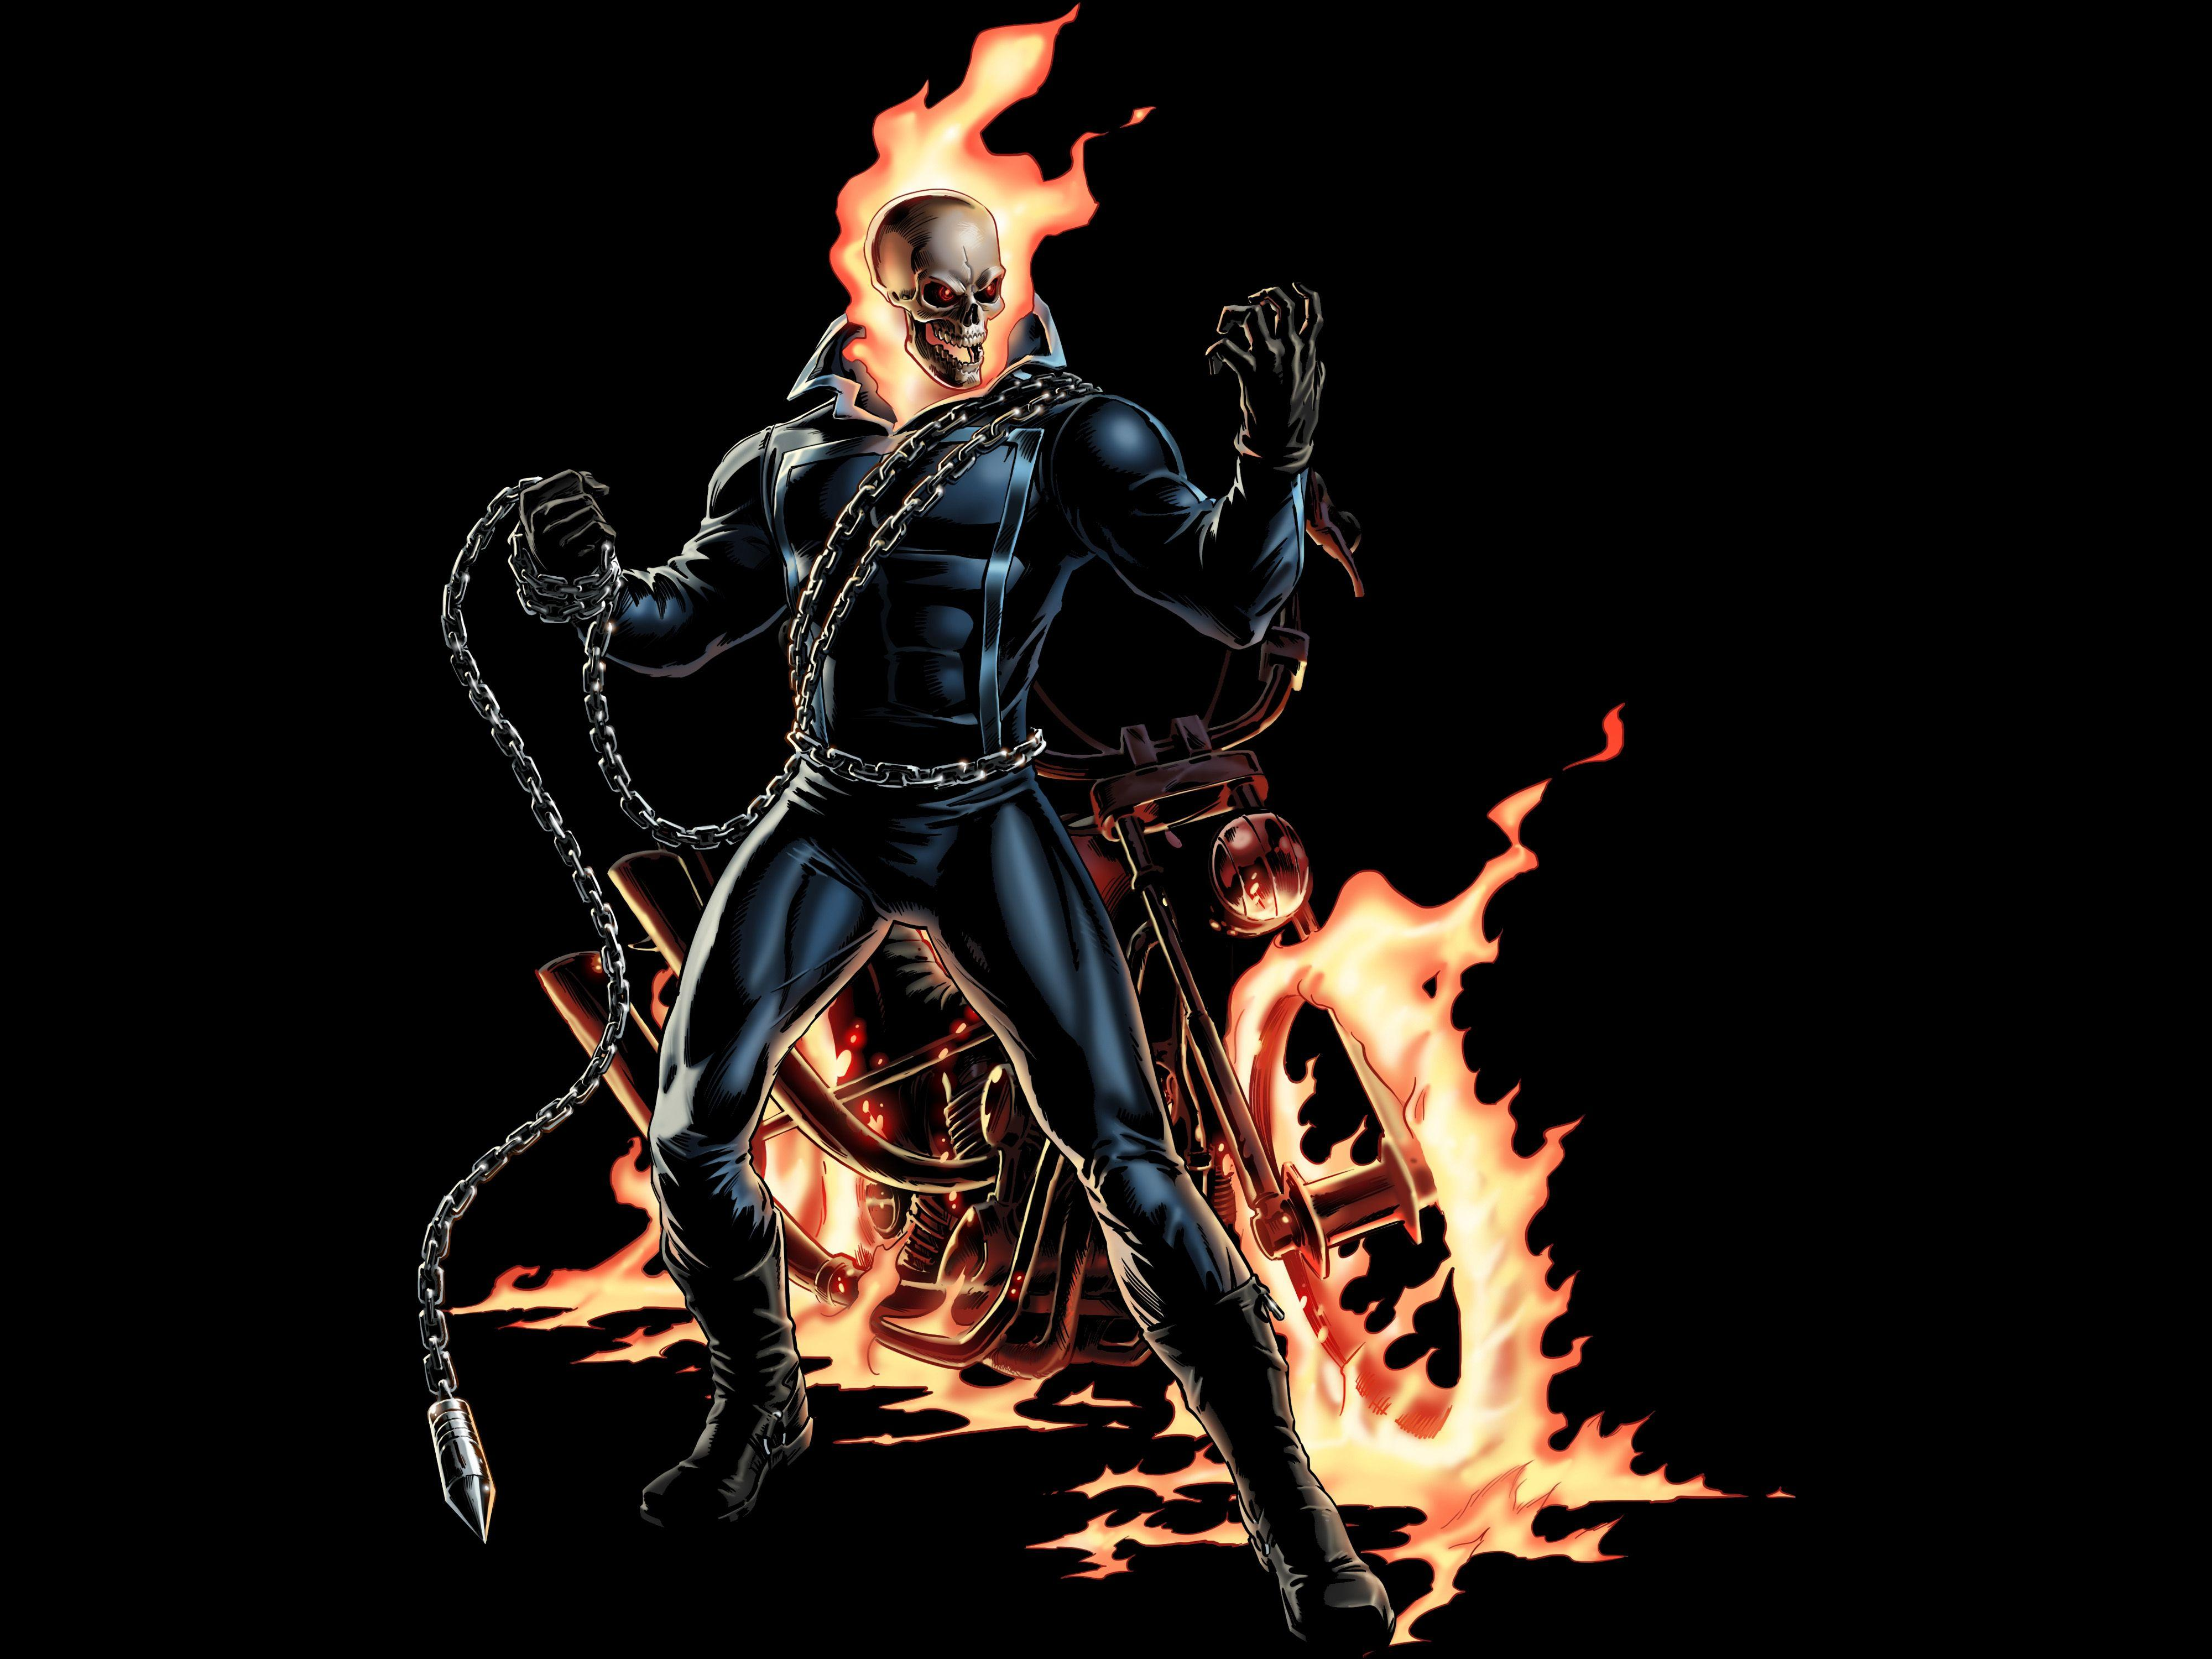 Ghost Rider 4k Ultra HD Wallpapers and Backgrounds Image